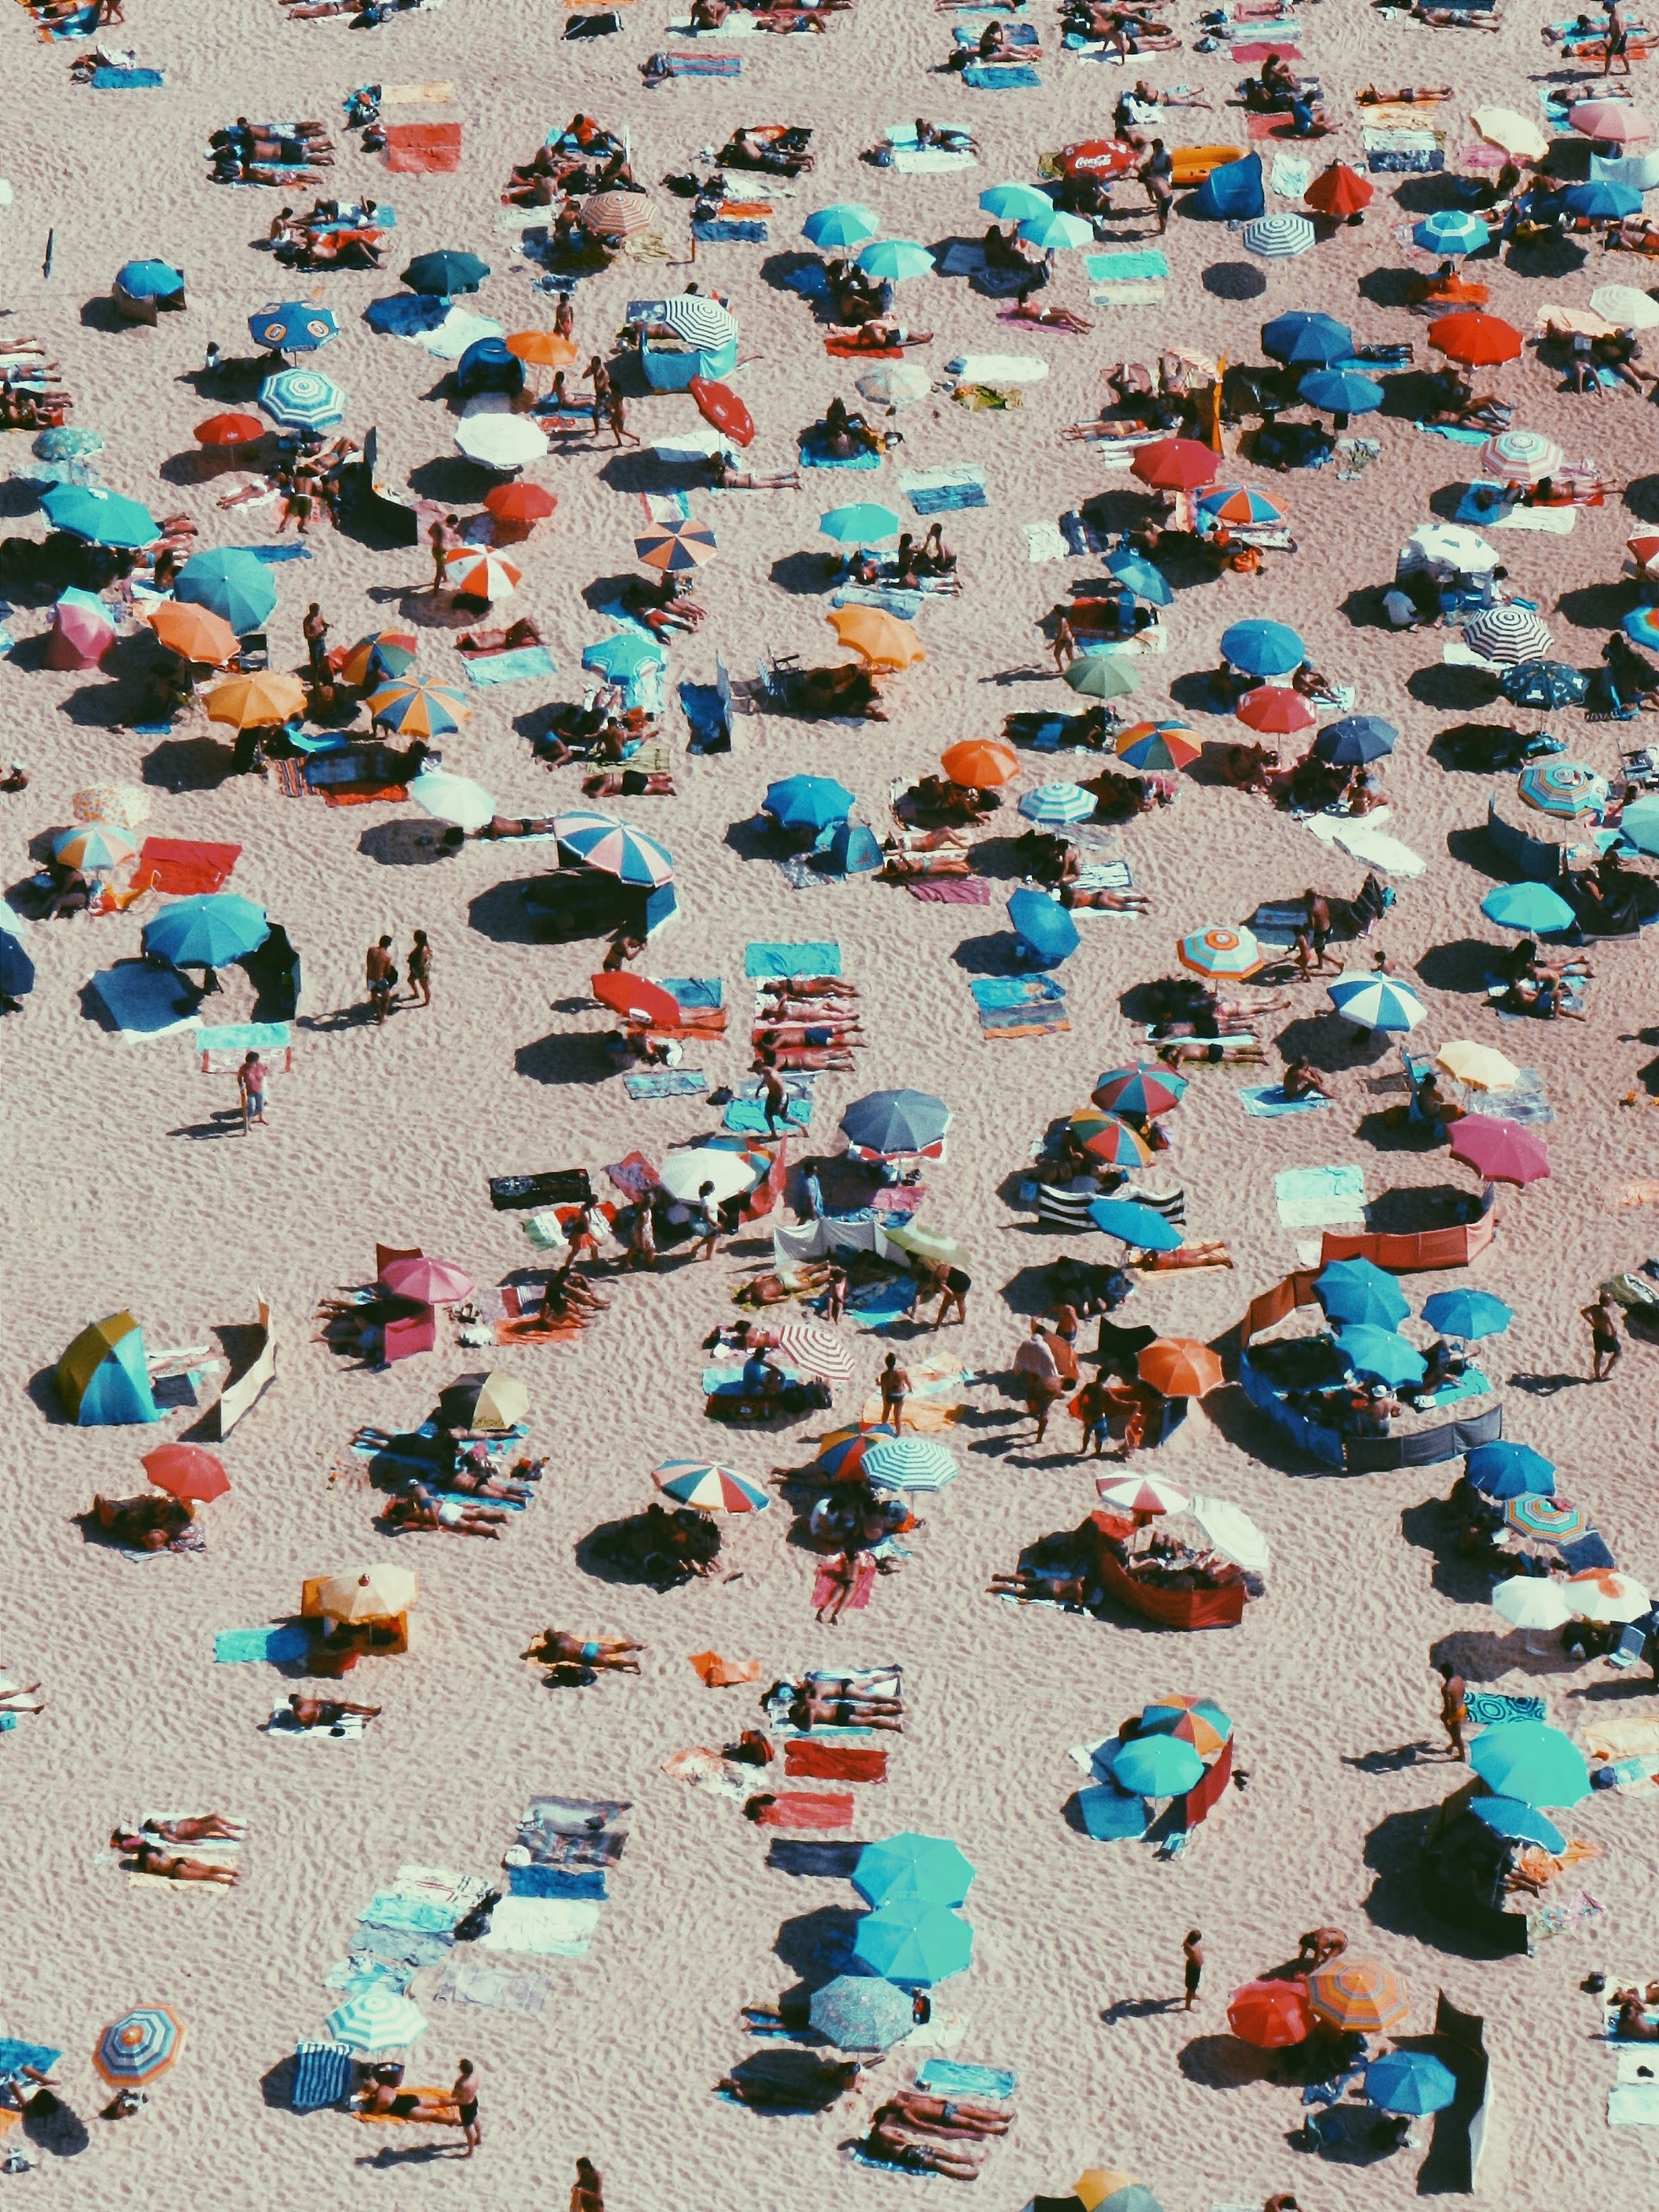 aerial photography of people and parasols on beach shoreline at daytime